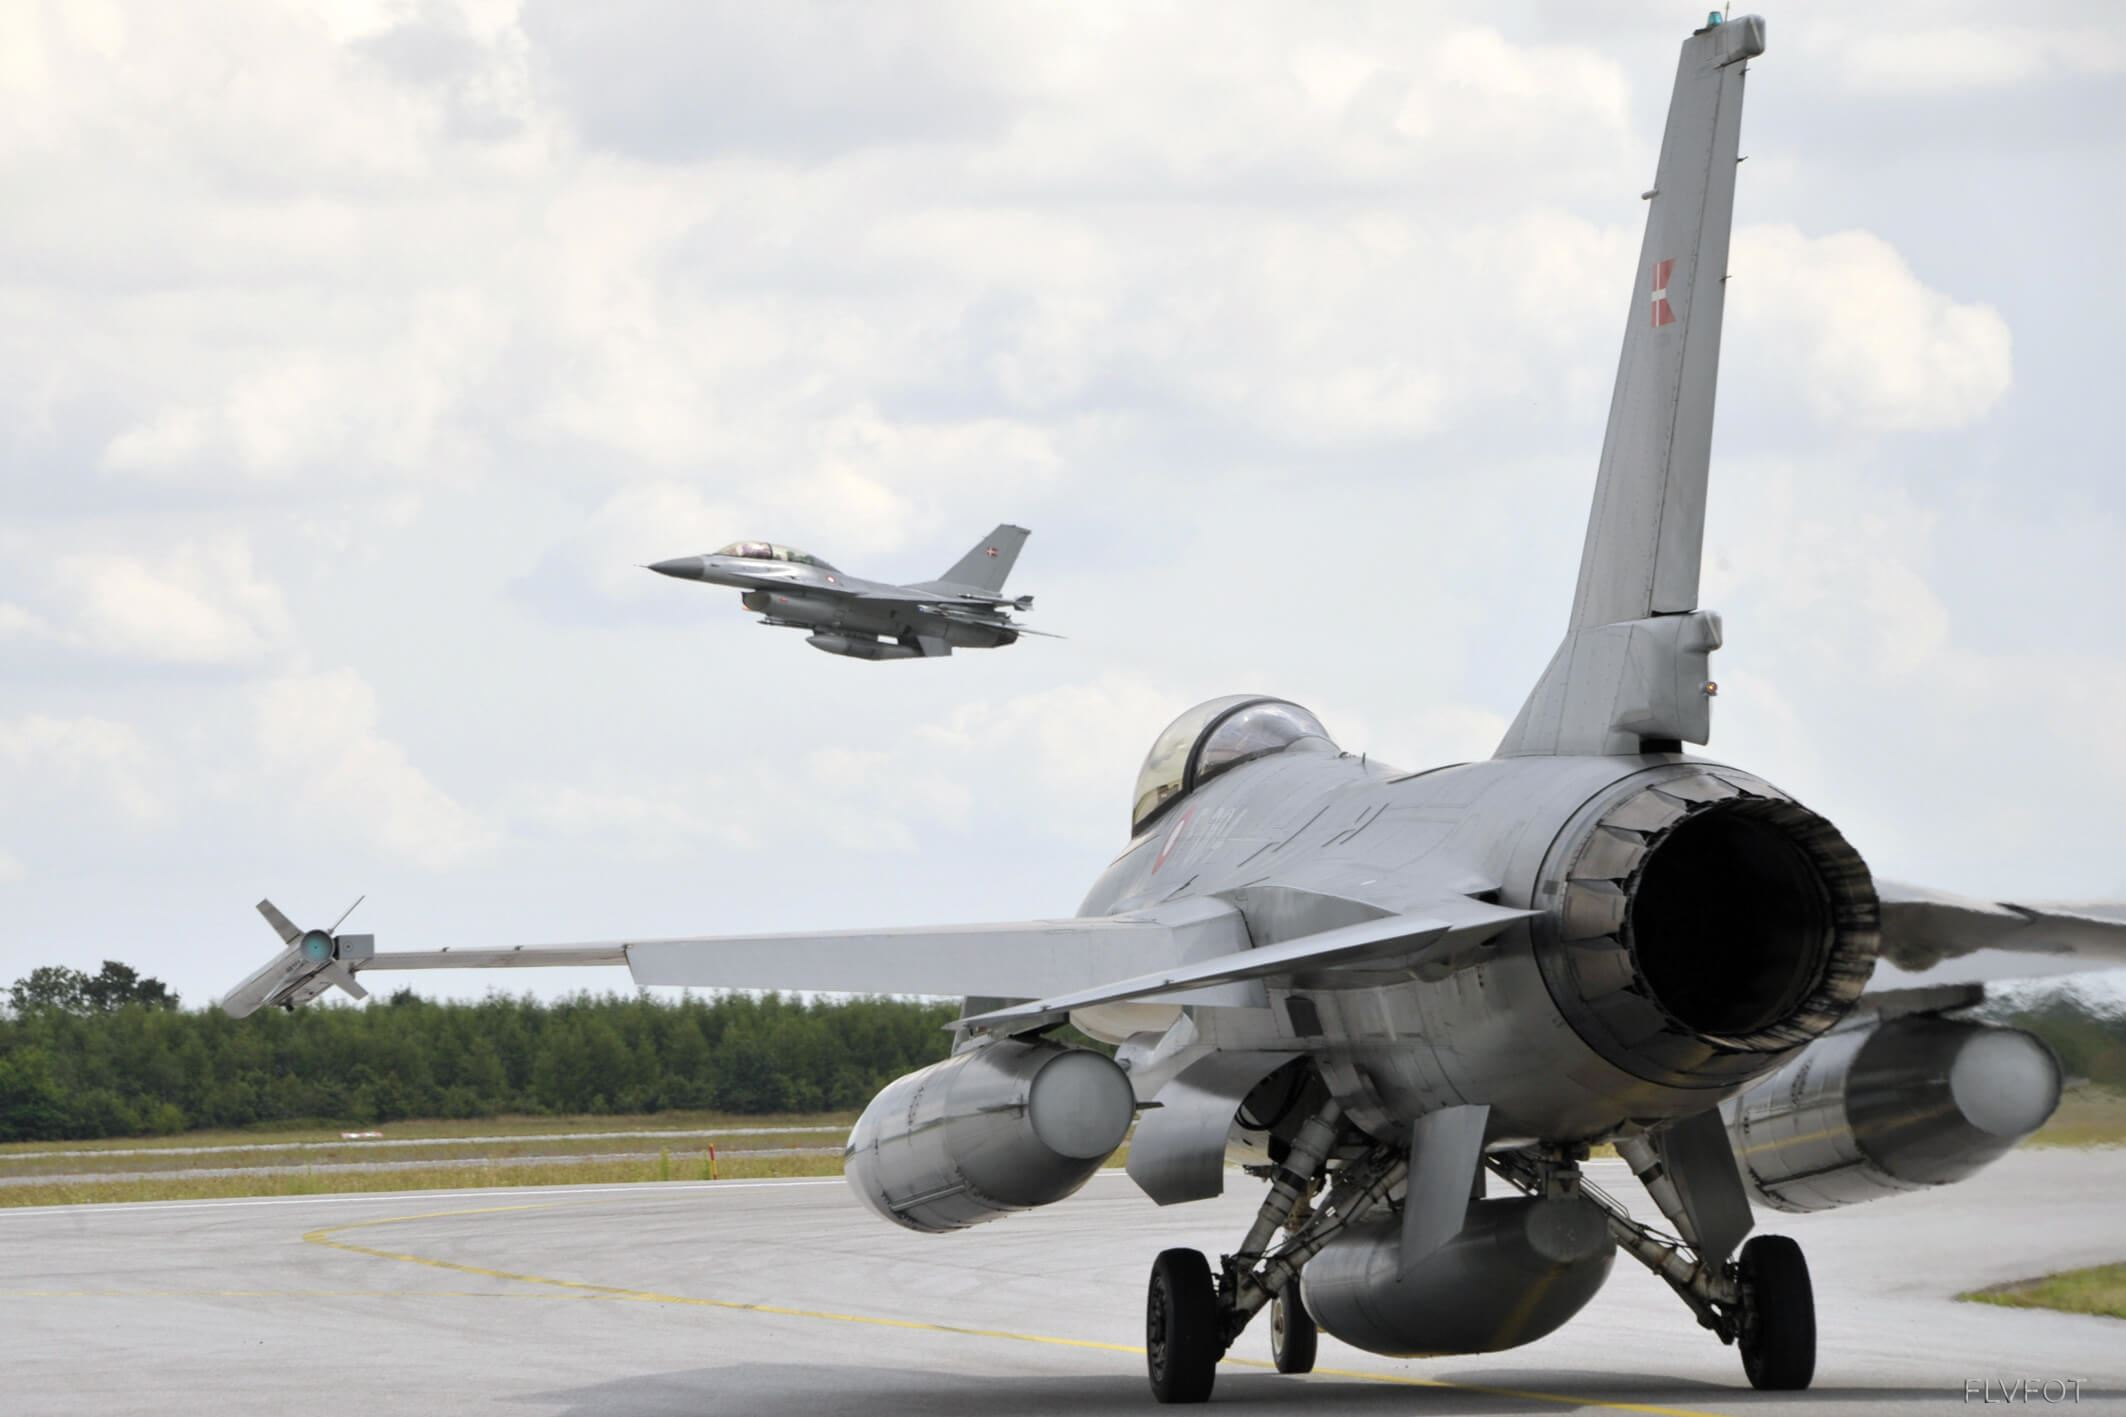 Get up close to an F16 fighter at Fighter Wing Skrydstrup